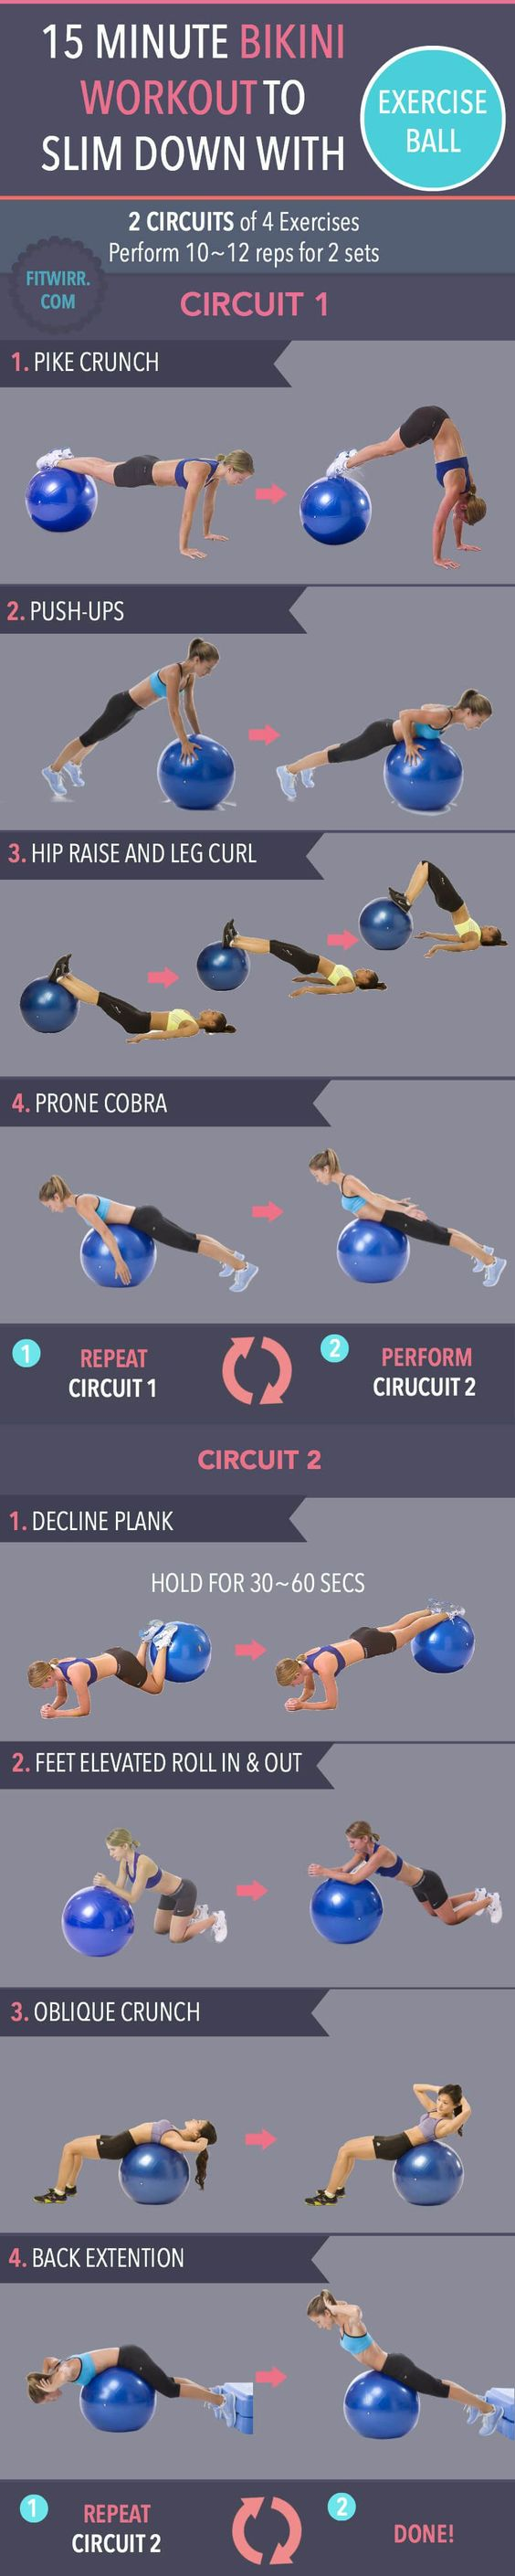 Nothing ruins a bikini look than a flabby stomach and a saggy butt. Not to worry. If your body is not bikini ready, we got you covered with this 15 Minute Bikini Ball Calorie Crusher and Fat Shredder Workout to whip your body into bikini shape.